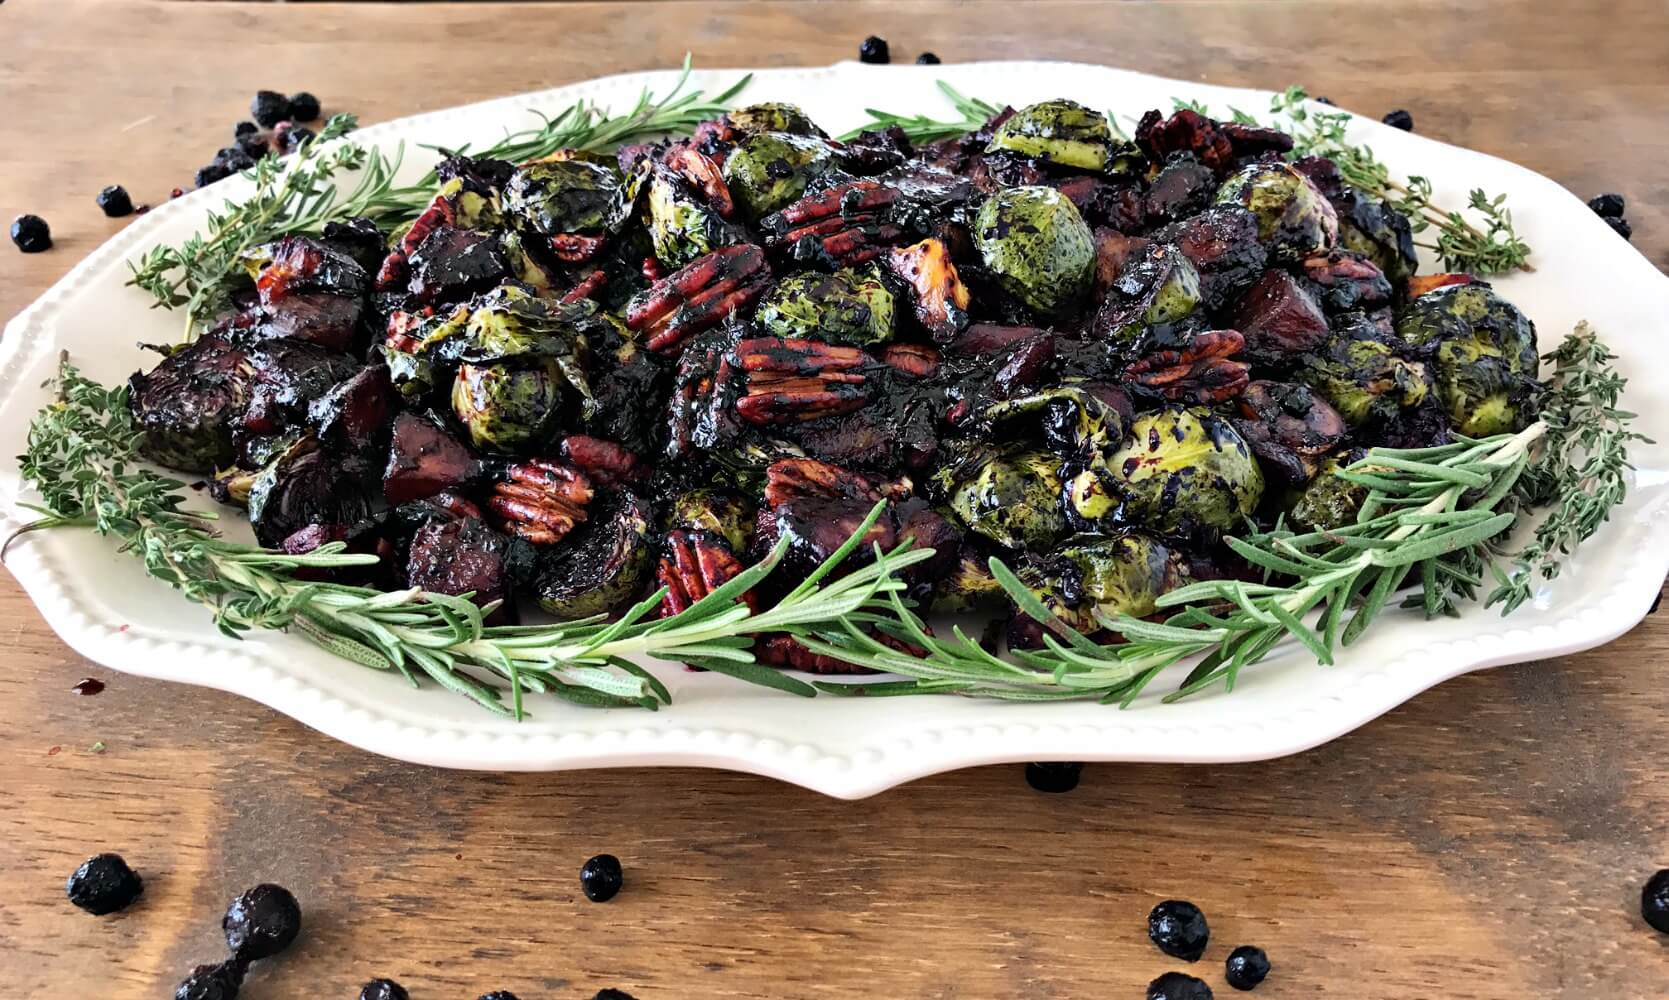 Roasted Vegetables & Pecans with Wild Blueberry Balsamic Sauce Picture